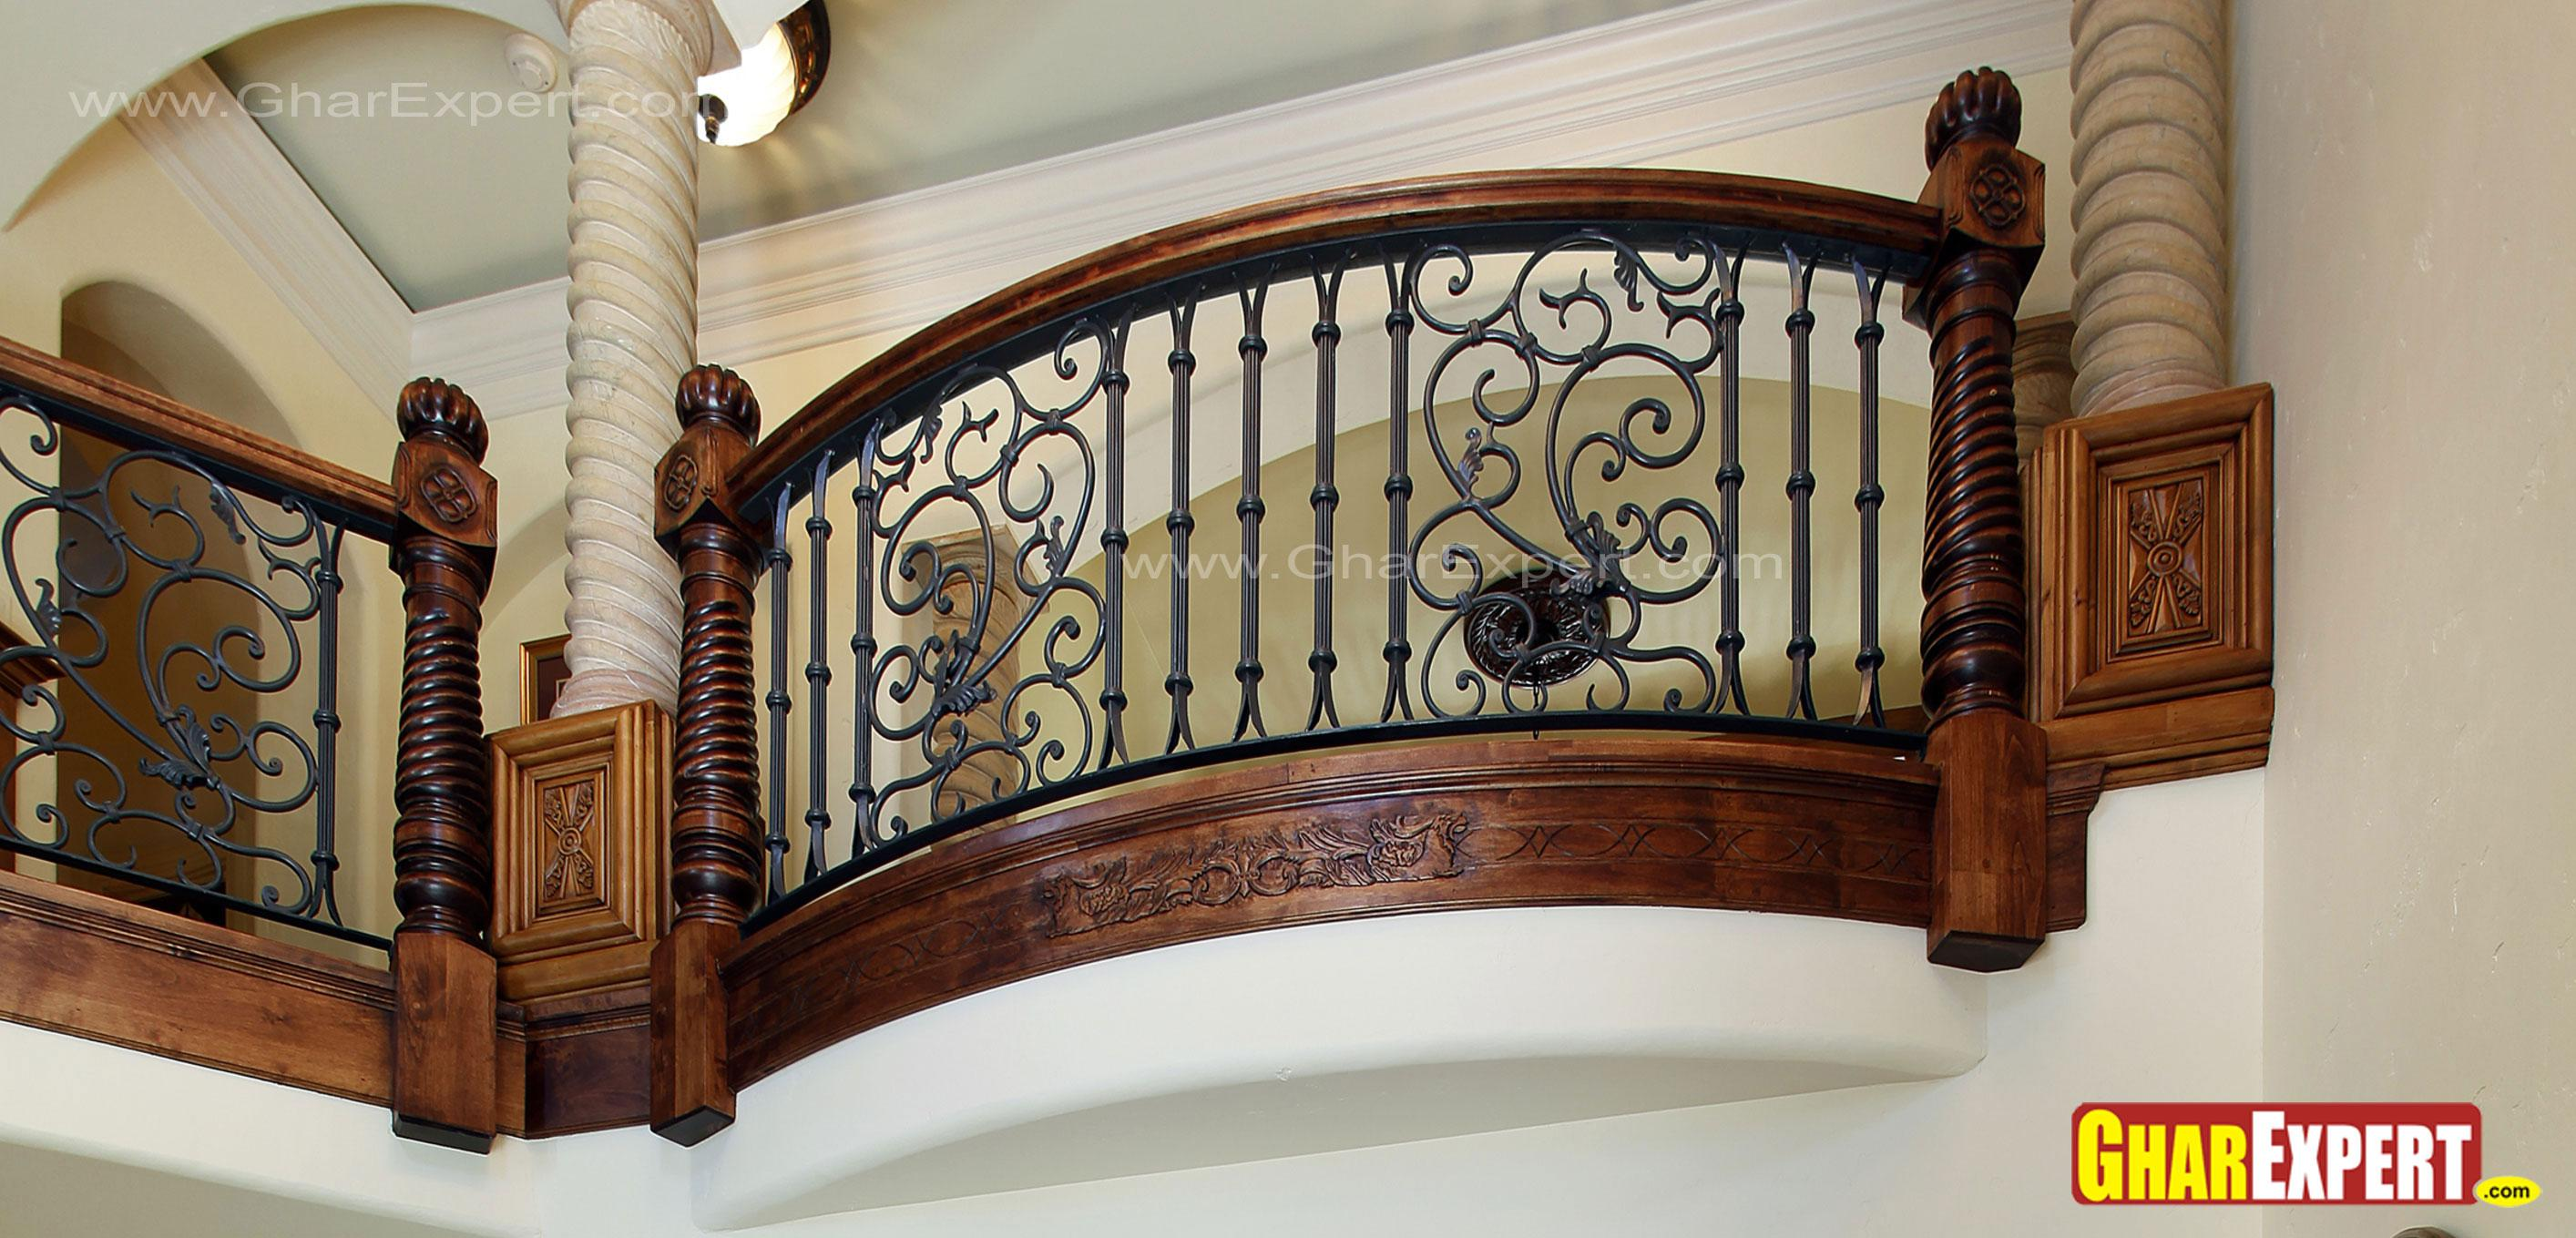 Iron Grill With Carved Wooden Balustrades Gharexpert